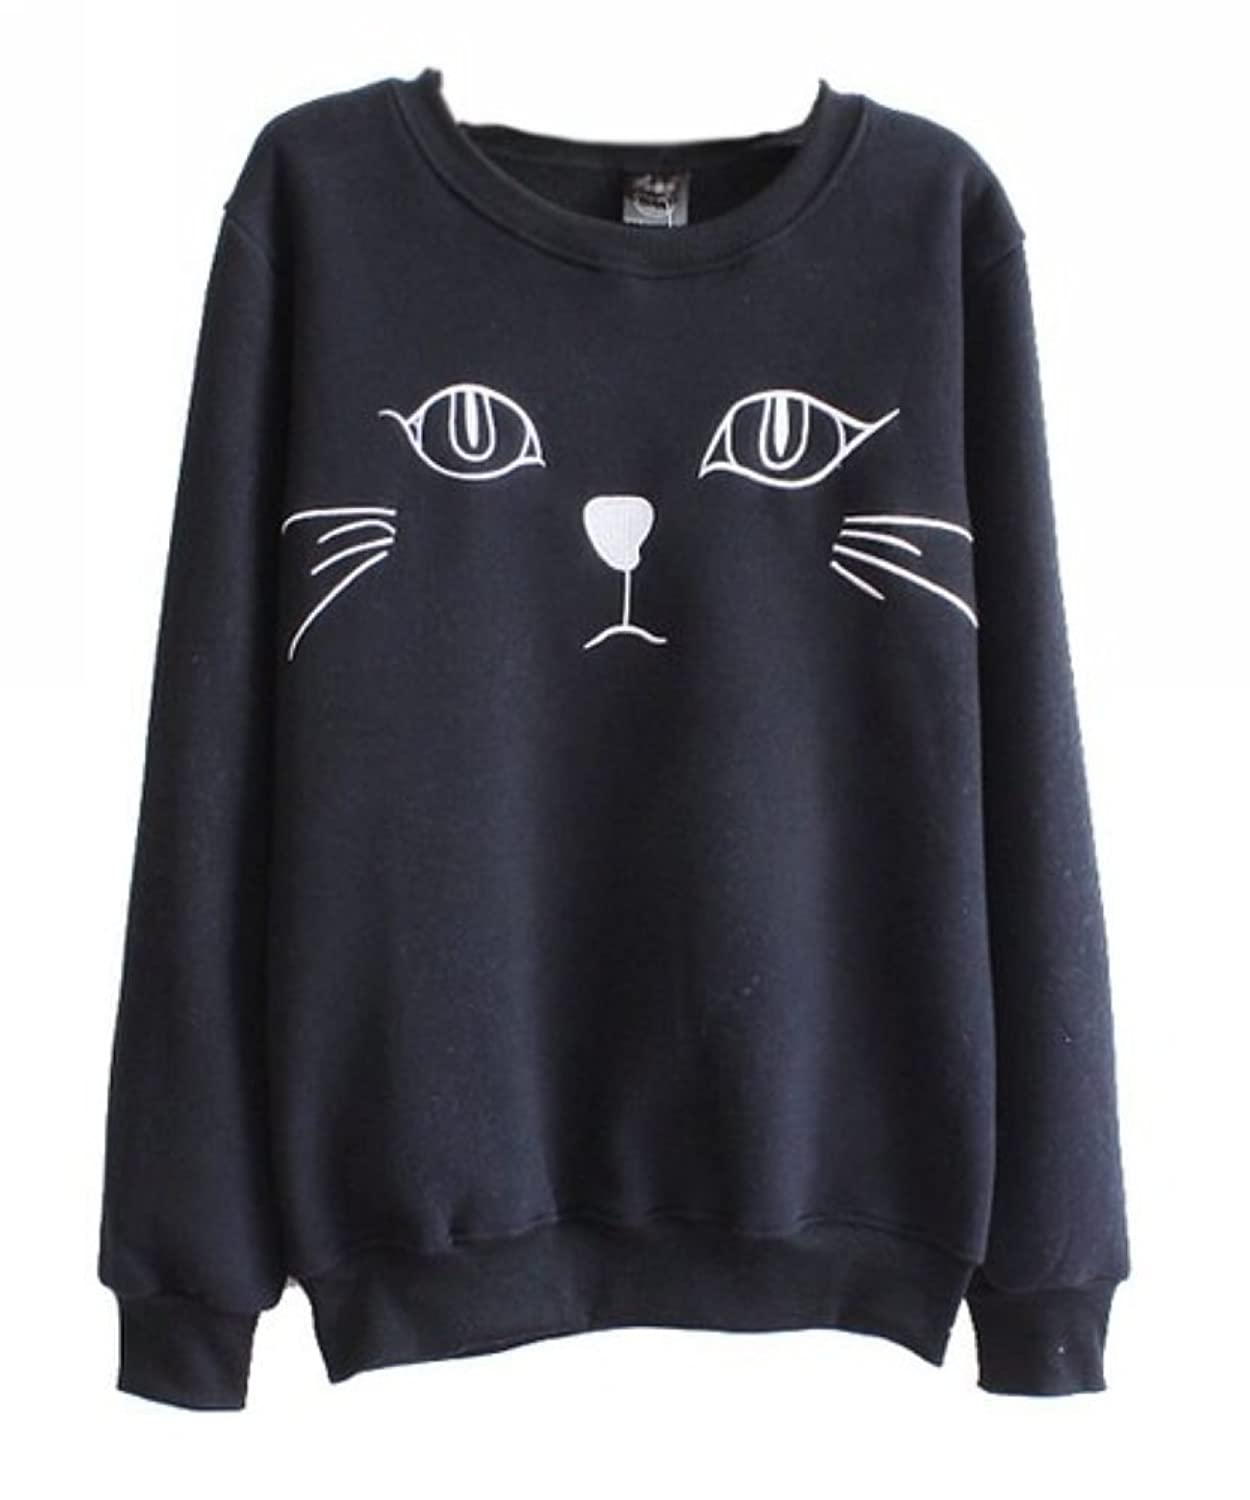 Uget Women's sports loose long-sleeved round neck cat face sweatshirts анна керн муза а с пушкина amorfati рипол классик